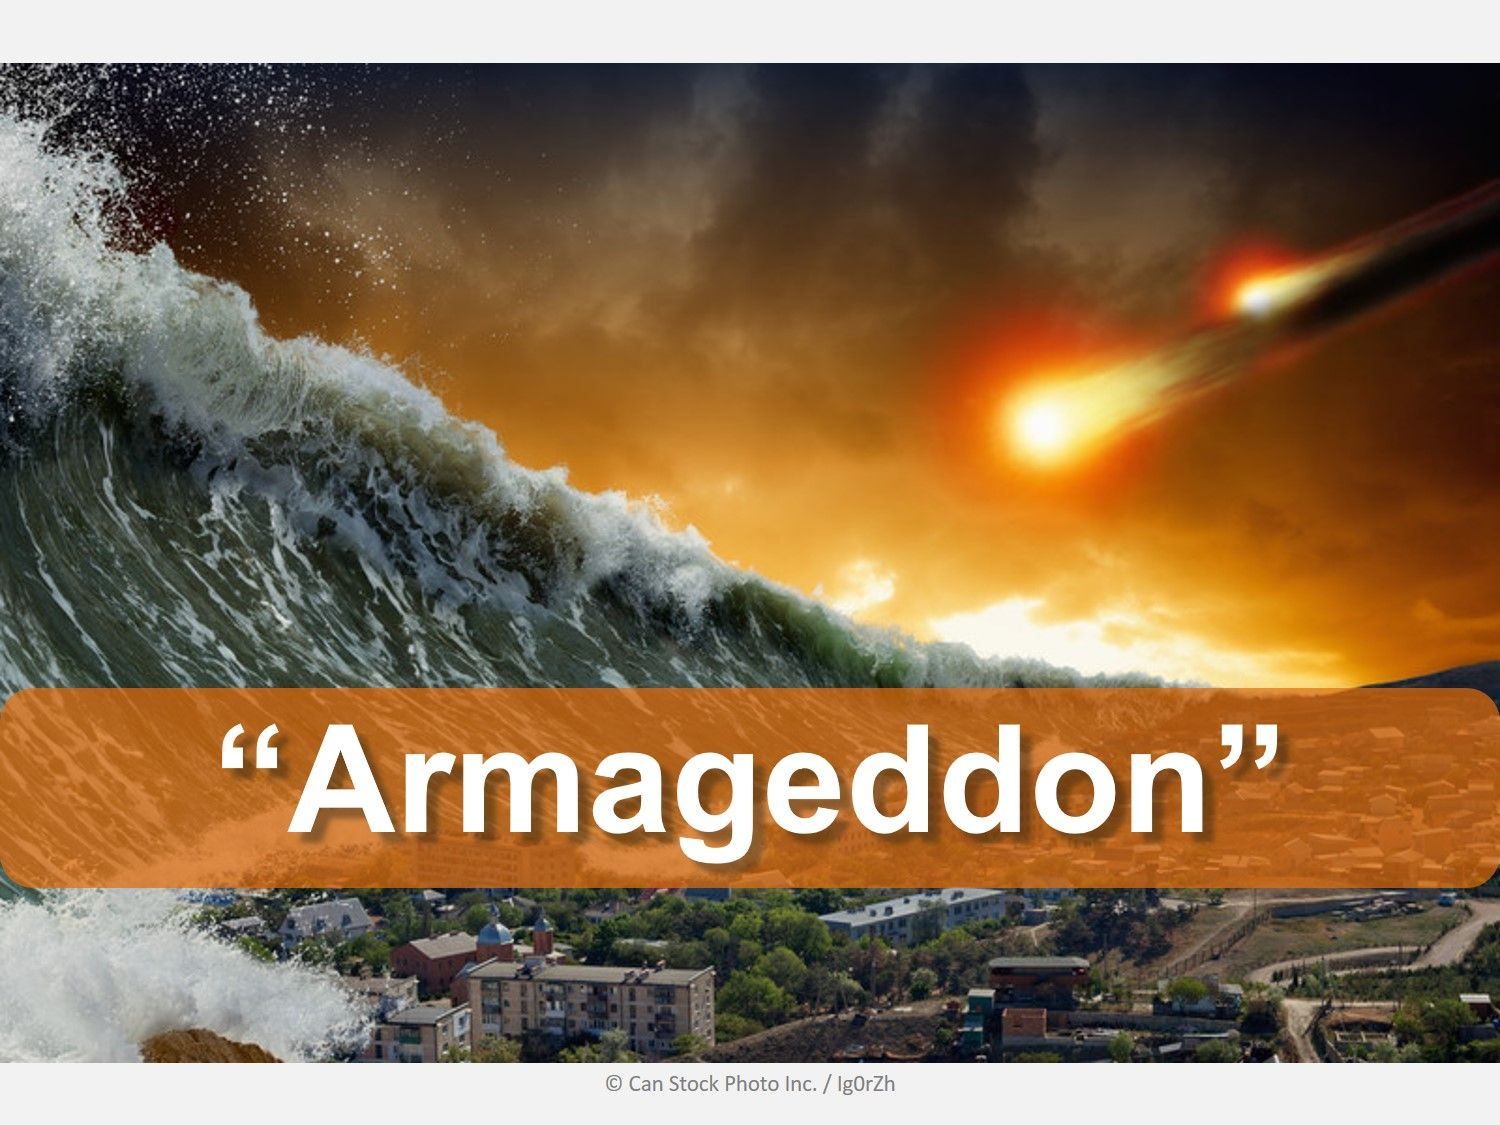 What Is the Battle of Armageddon? - photo#2